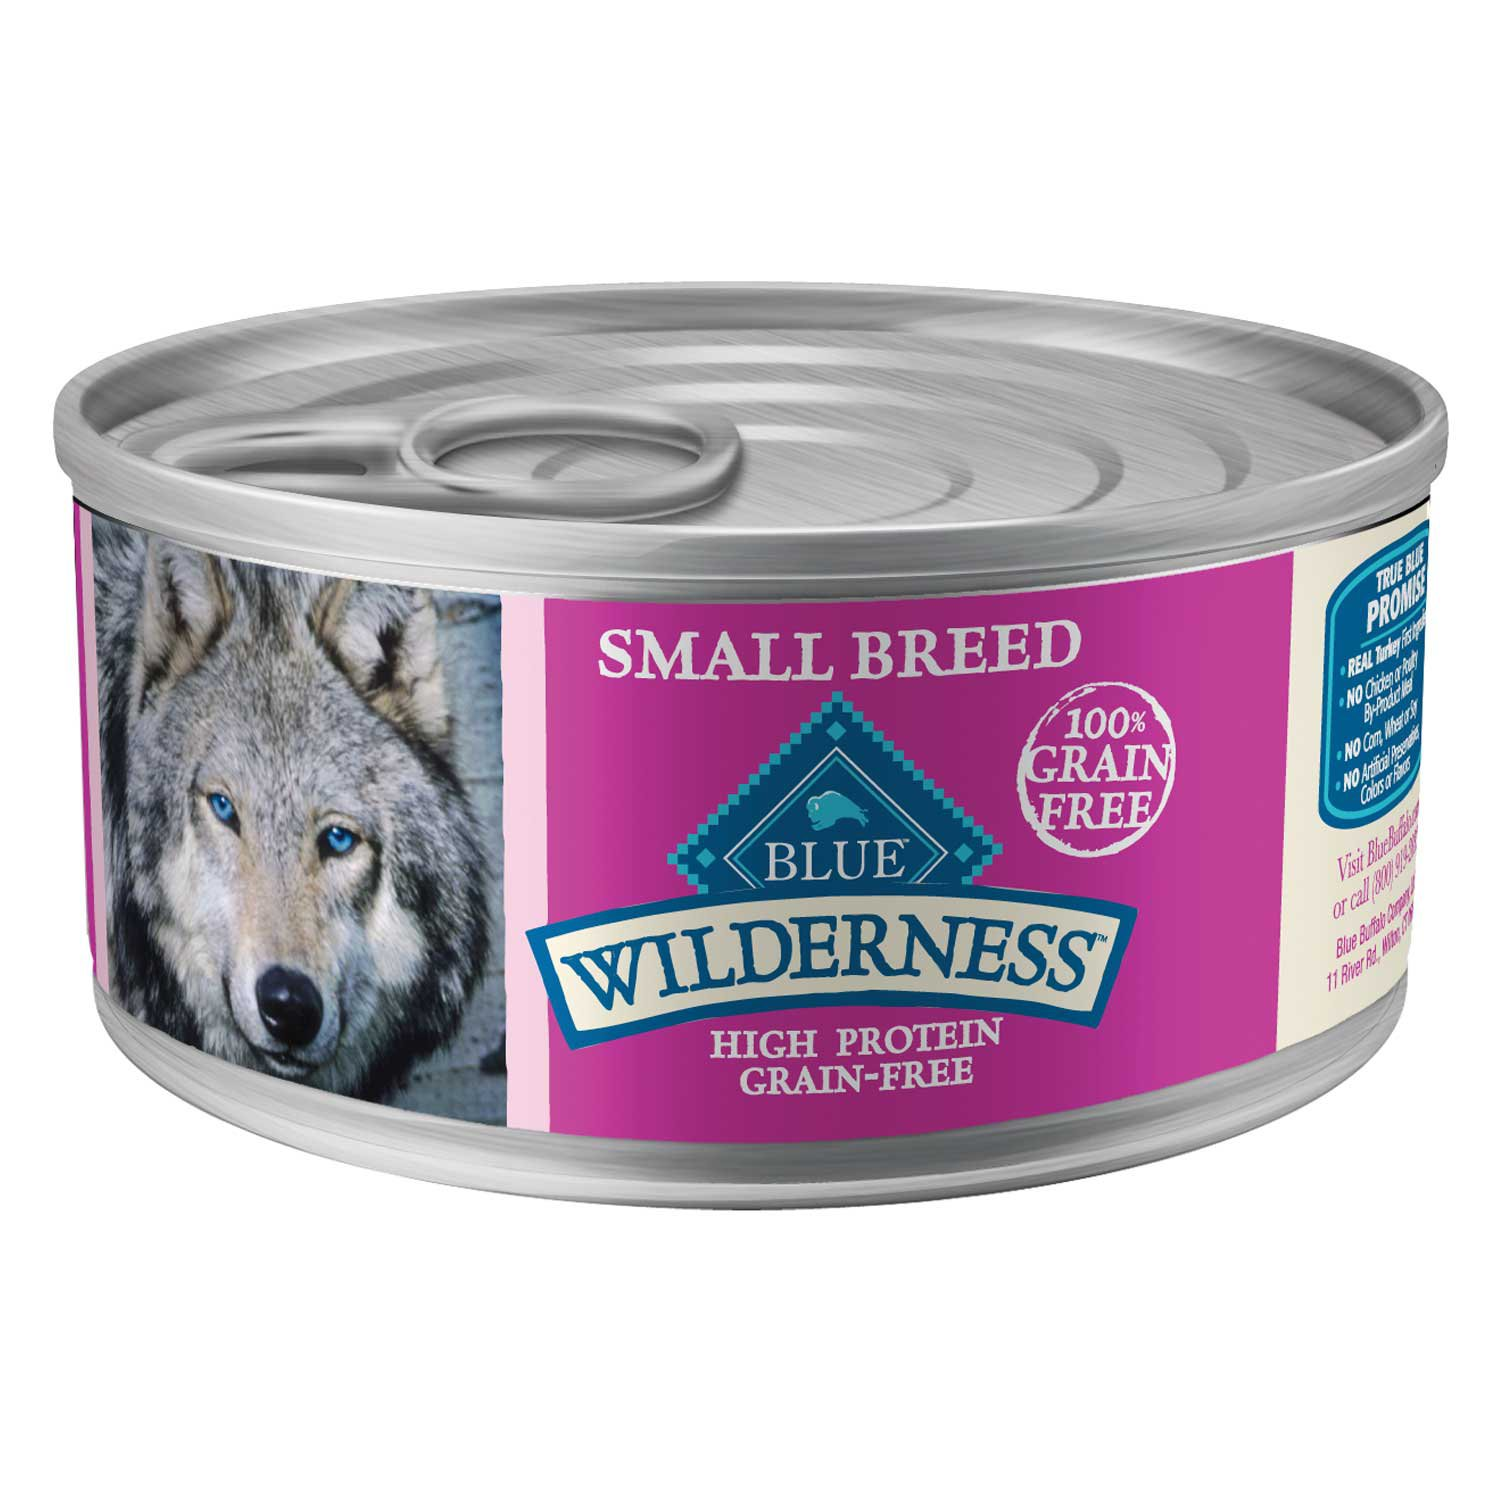 Petco Blue Buffalo Small Breed Dog Food